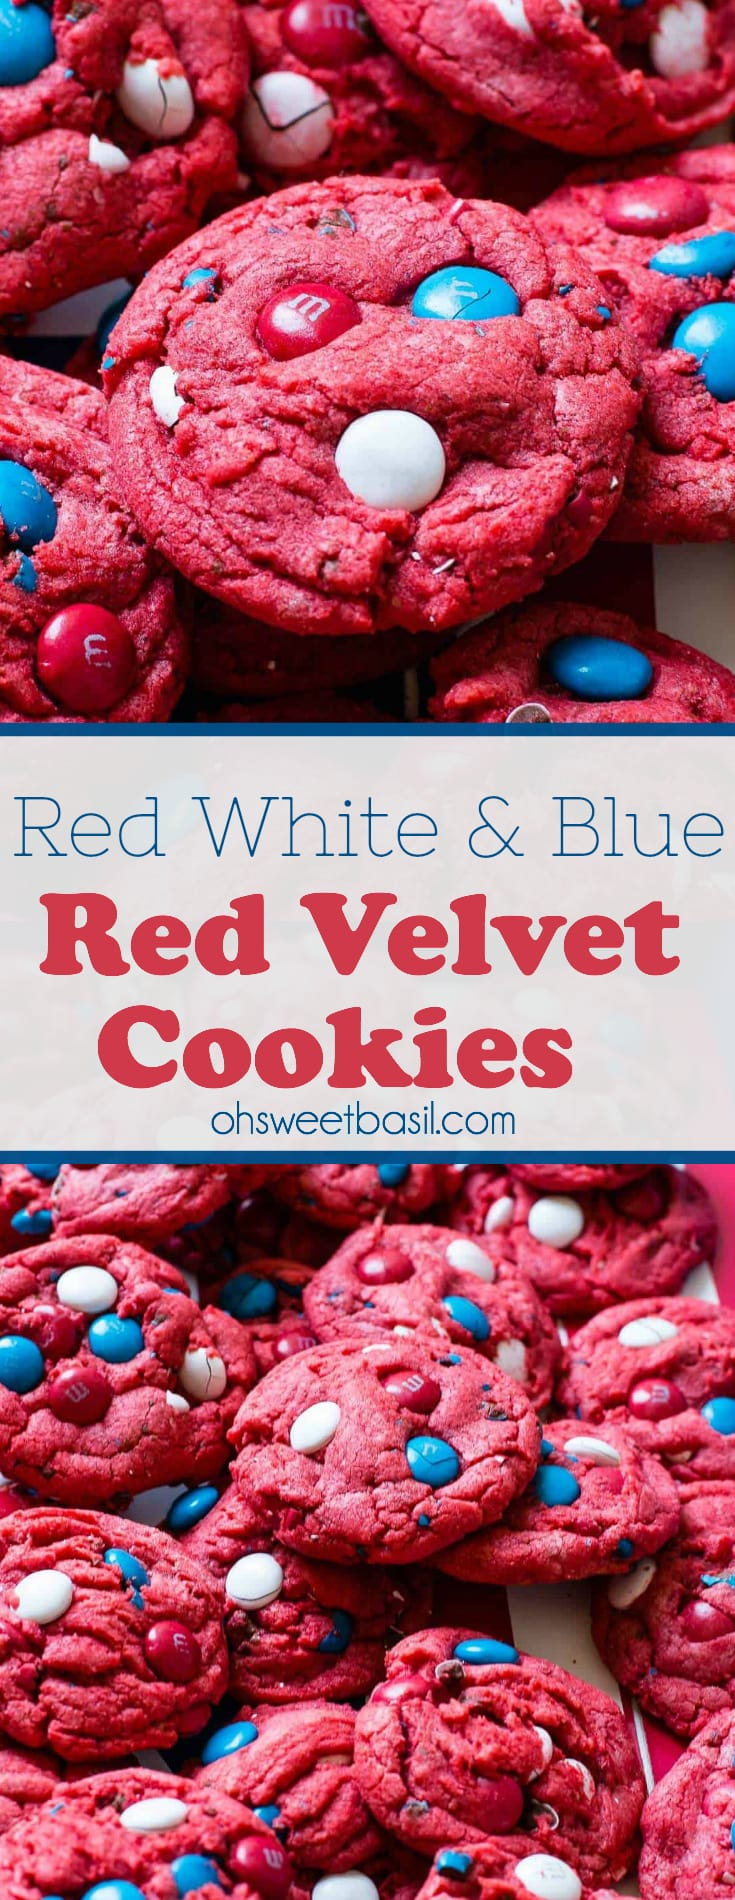 A bunch of Red White and Blue Red Velvet Cookies with m&m's